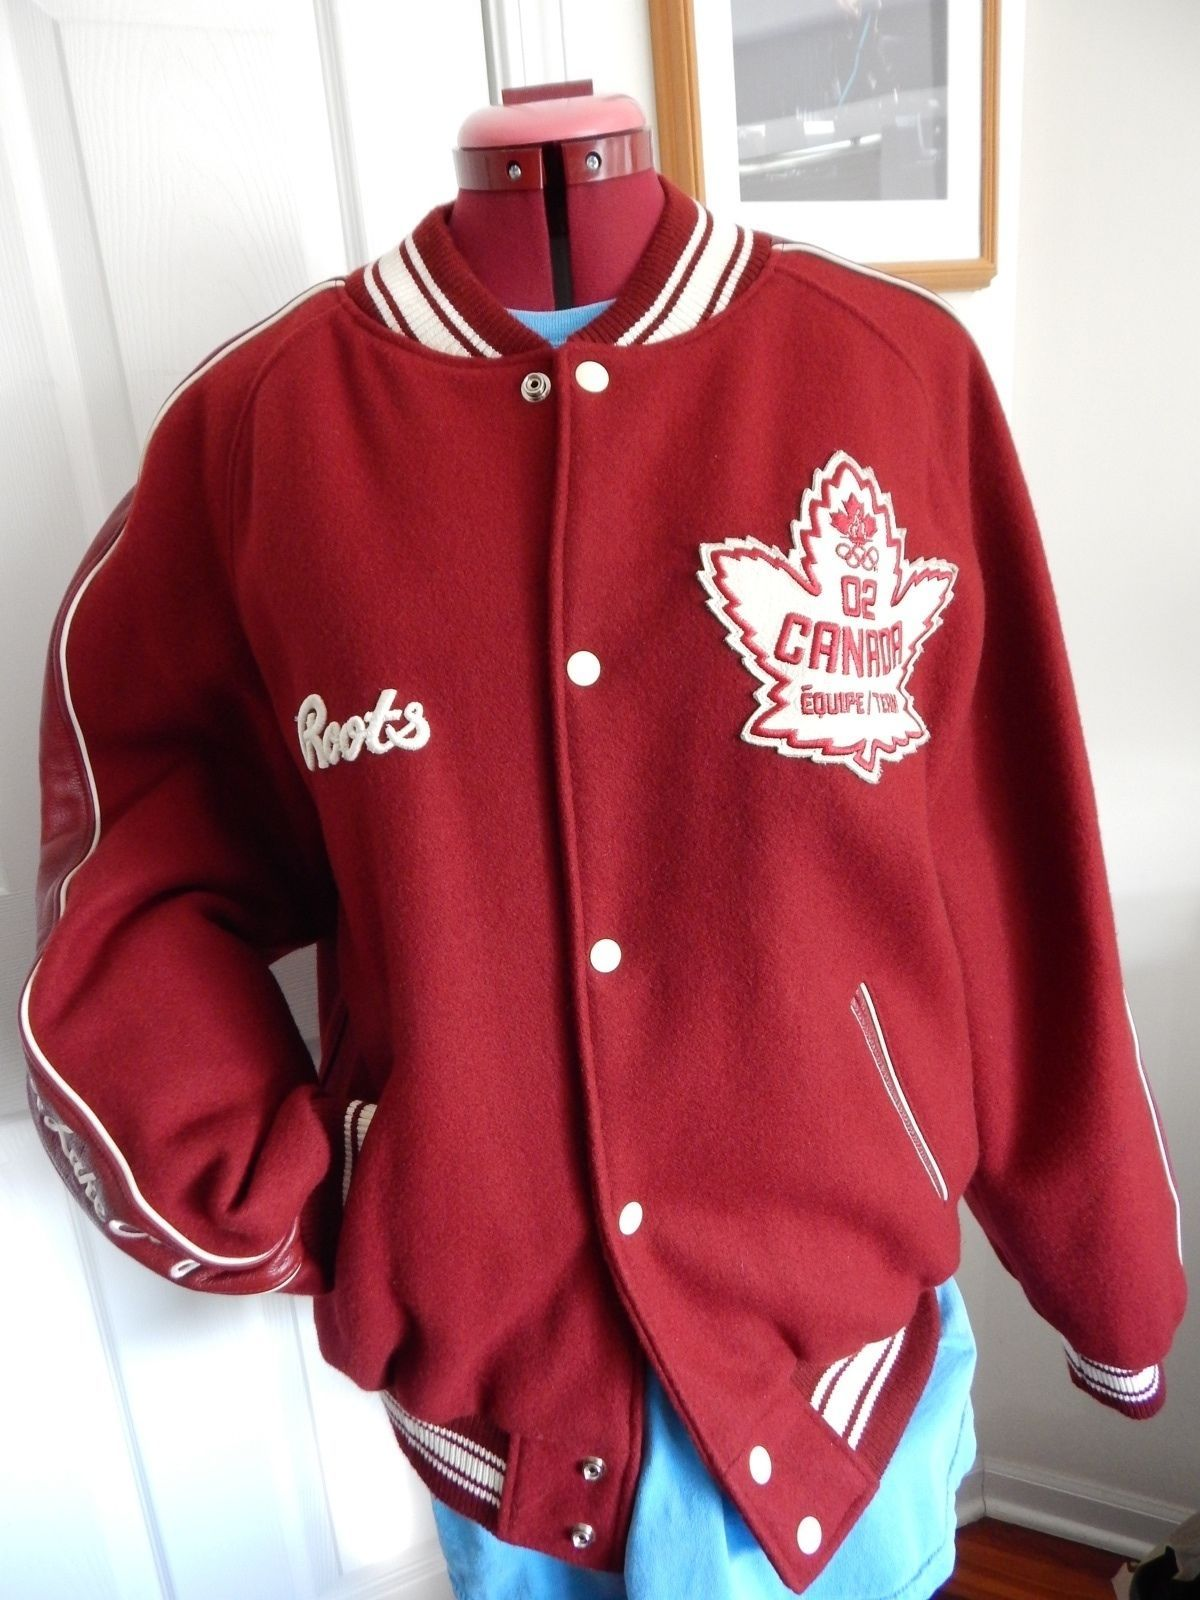 59182a5e8bb Vintage ROOTS Team Canada Winter Olympics 2002 SLC Varsity Letterman Jacket  L